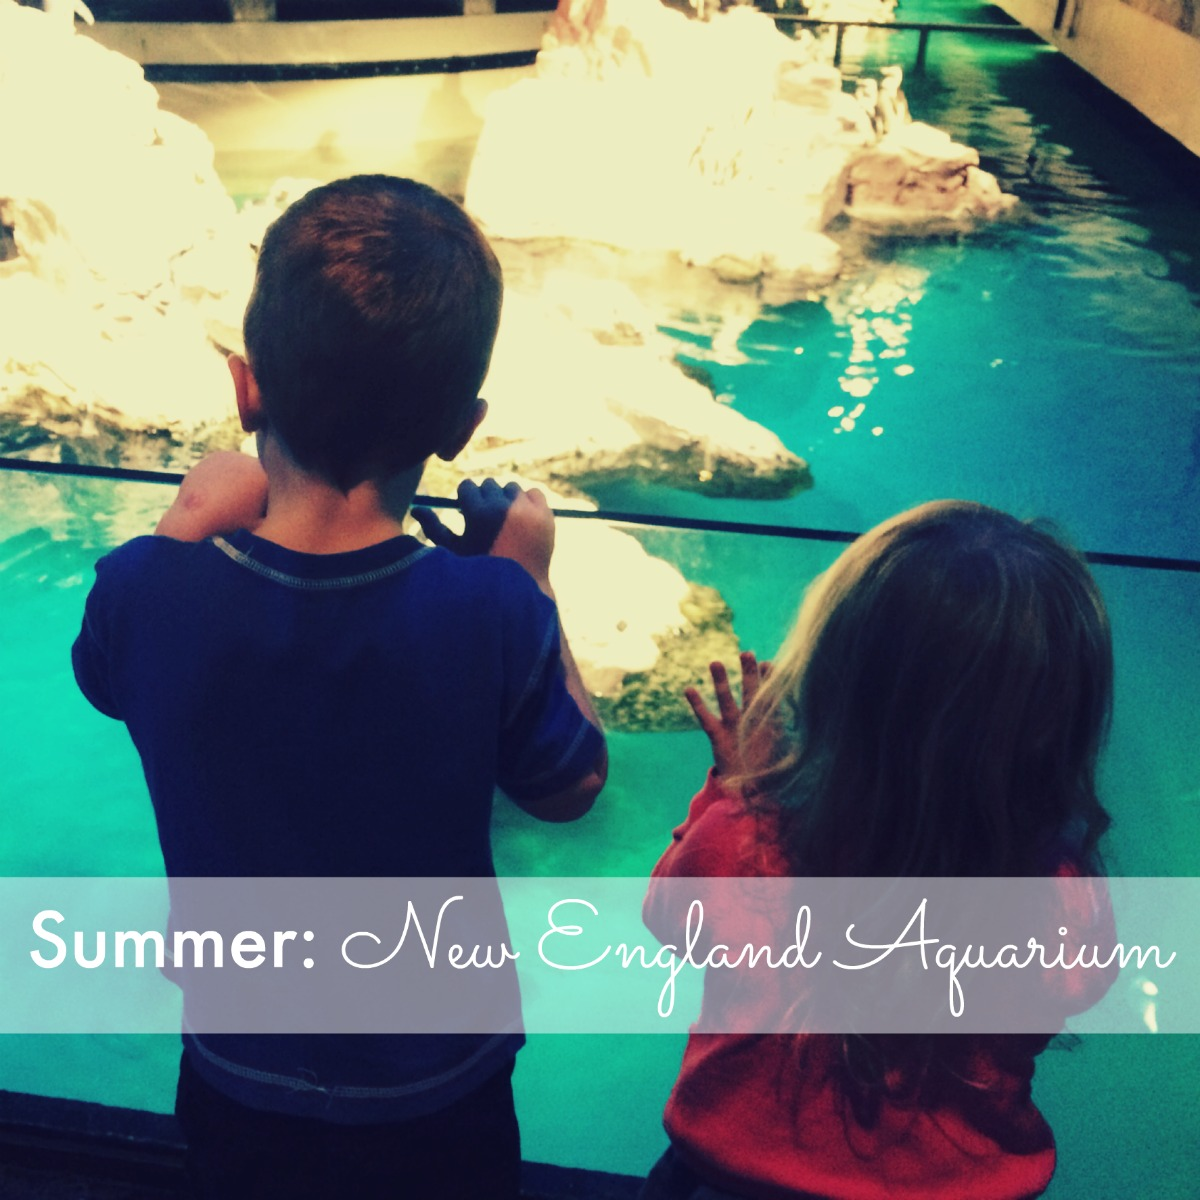 Summer: New England Aquarium